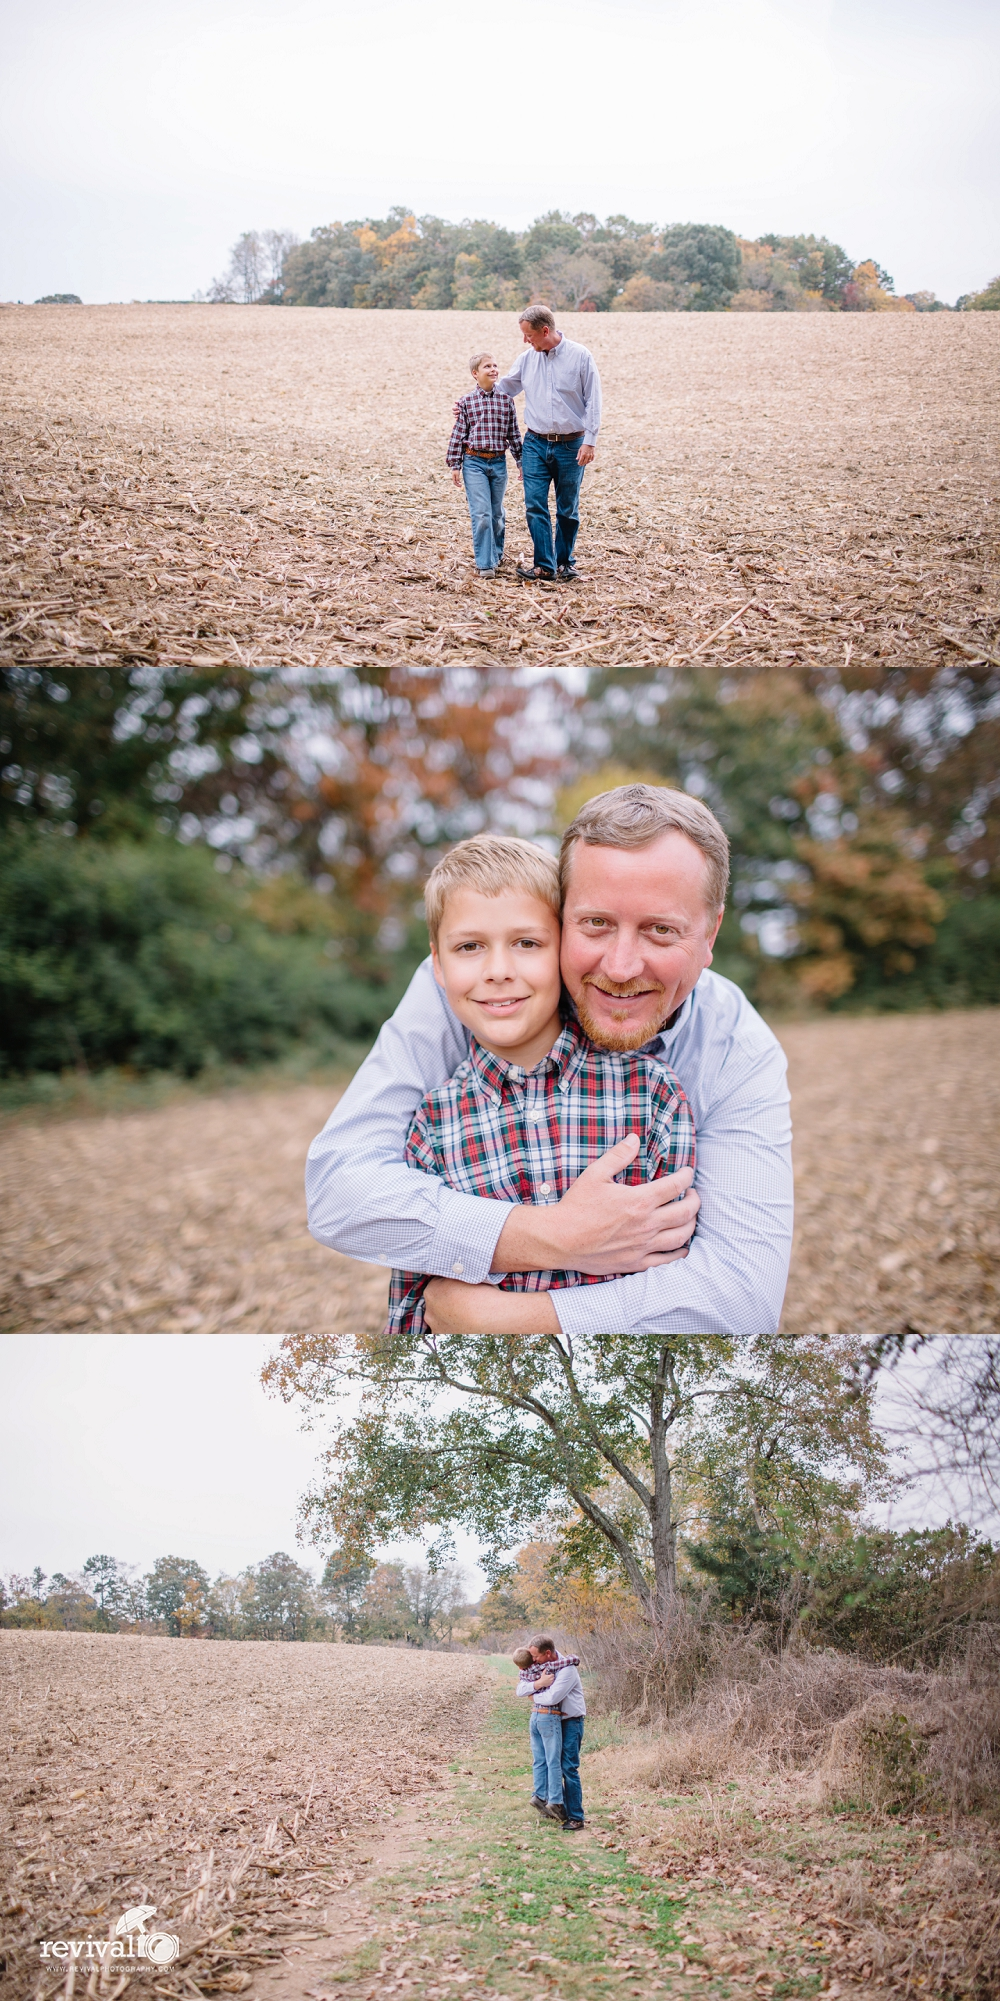 The Bland Family - A Revival Photography Family Session NC Lifestyle Photographers Revival Photography www.revivalphotography.com